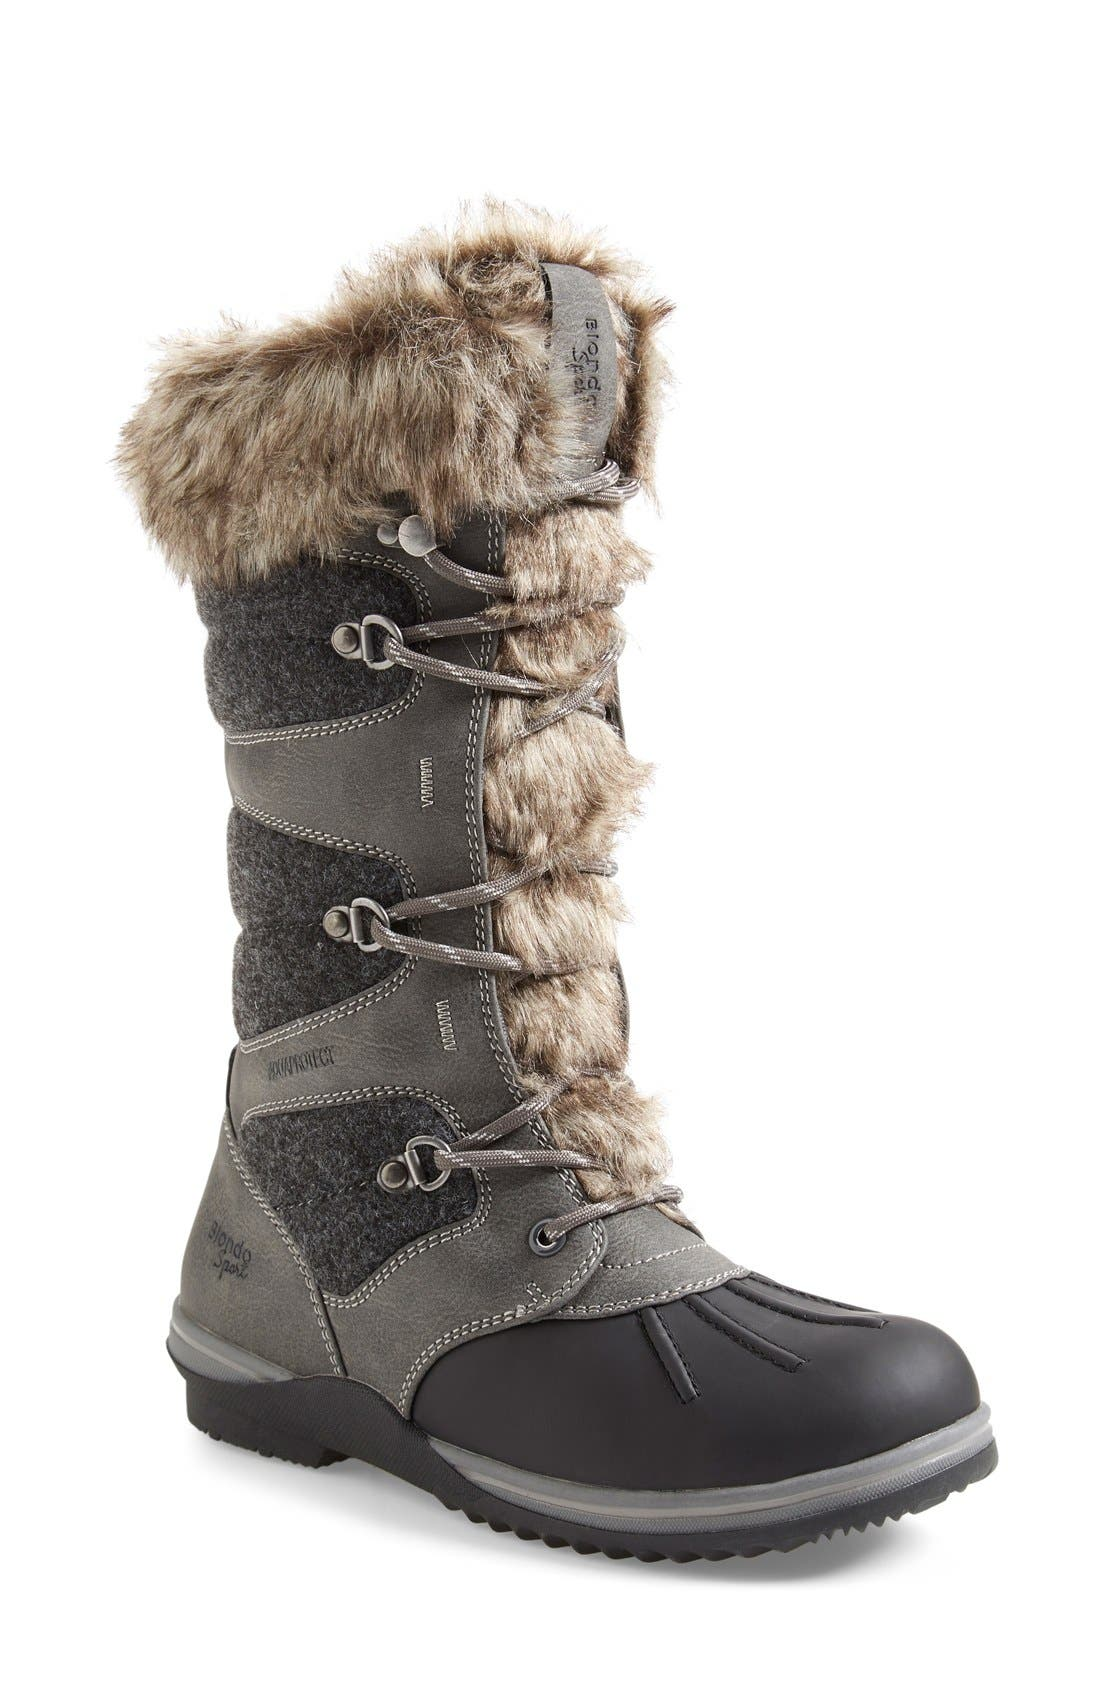 BLONDO 'Sasha' Waterproof Snow Boot